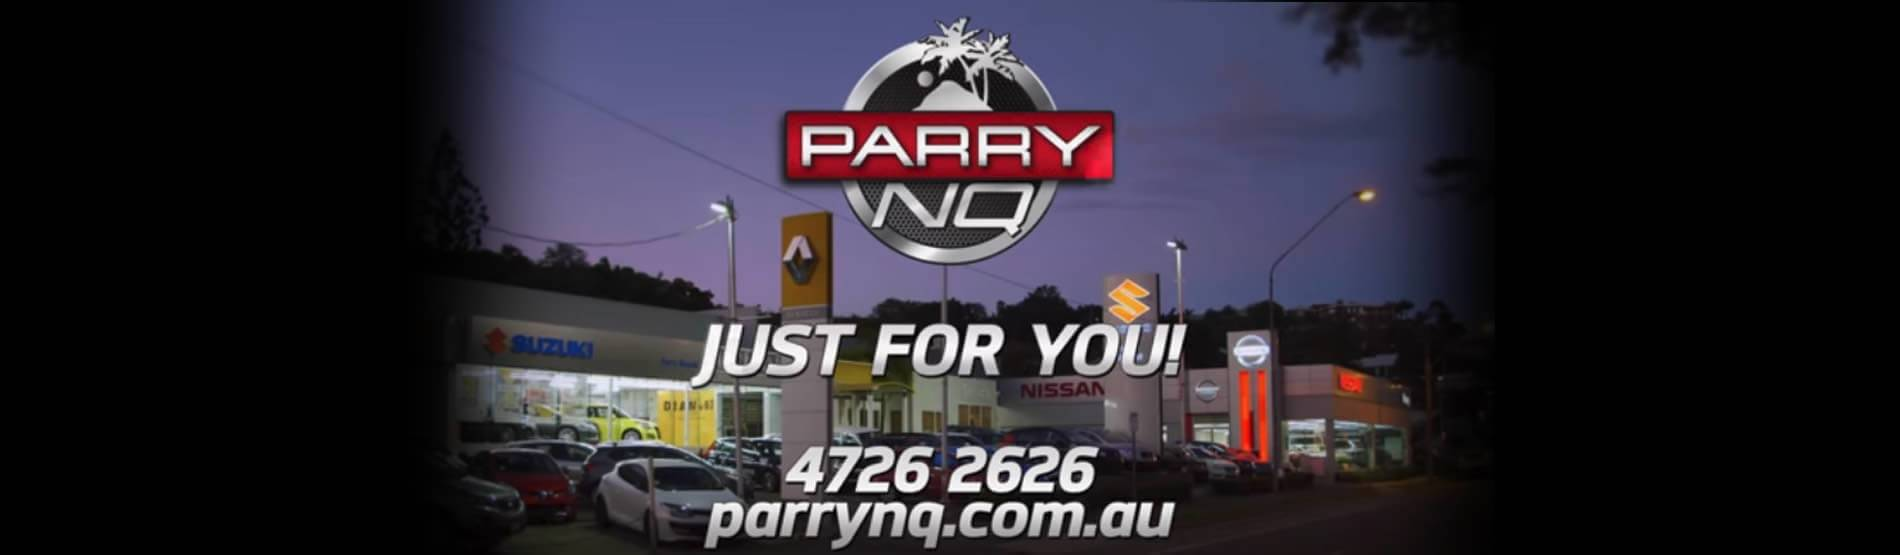 ParryNQNissan-Just For You